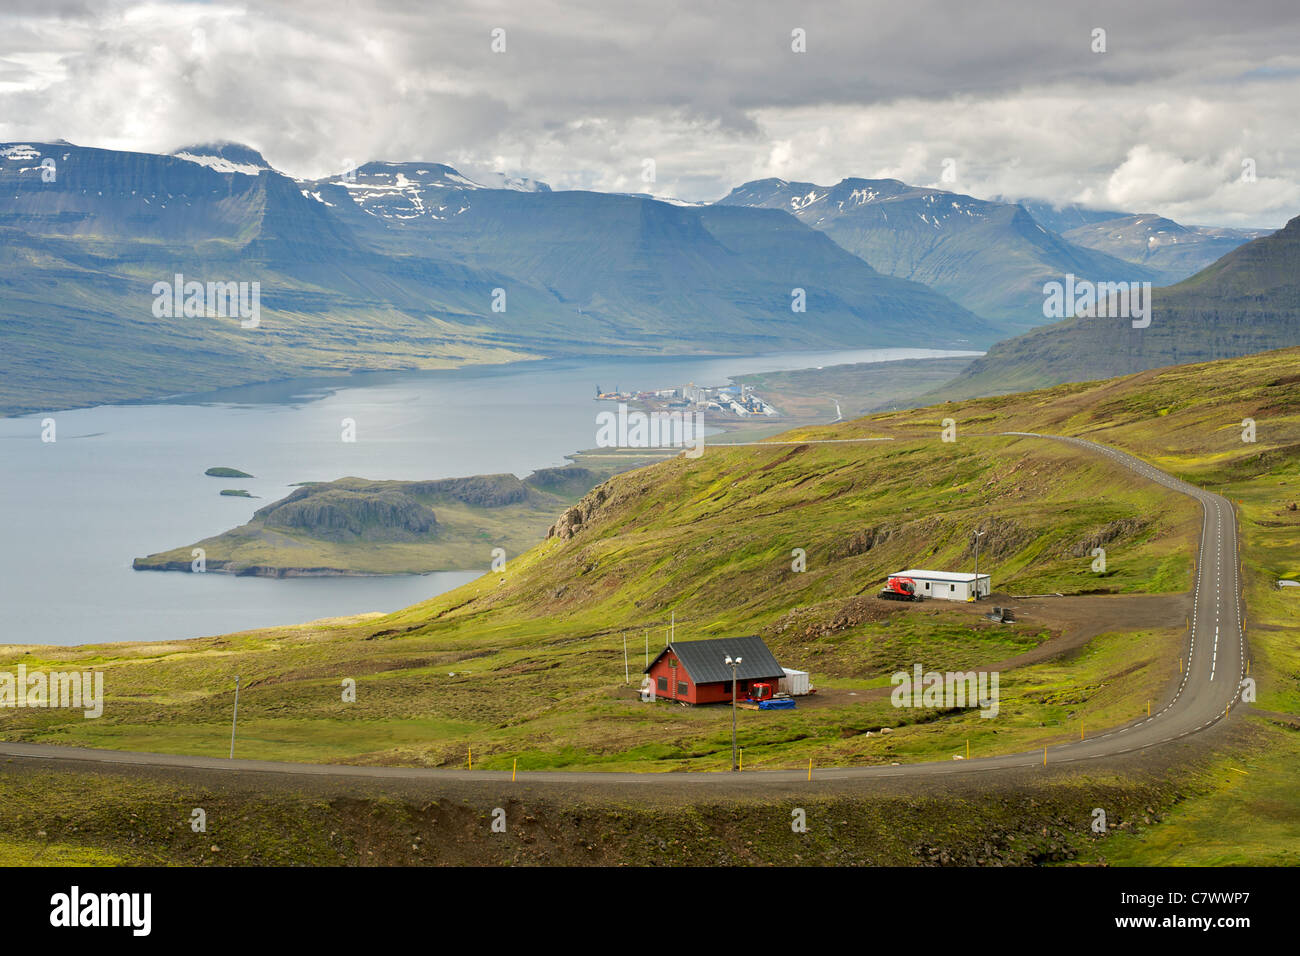 View of Reydarfjordur (background) and Eskifjordur (foreground), two fjords in east Iceland. - Stock Image